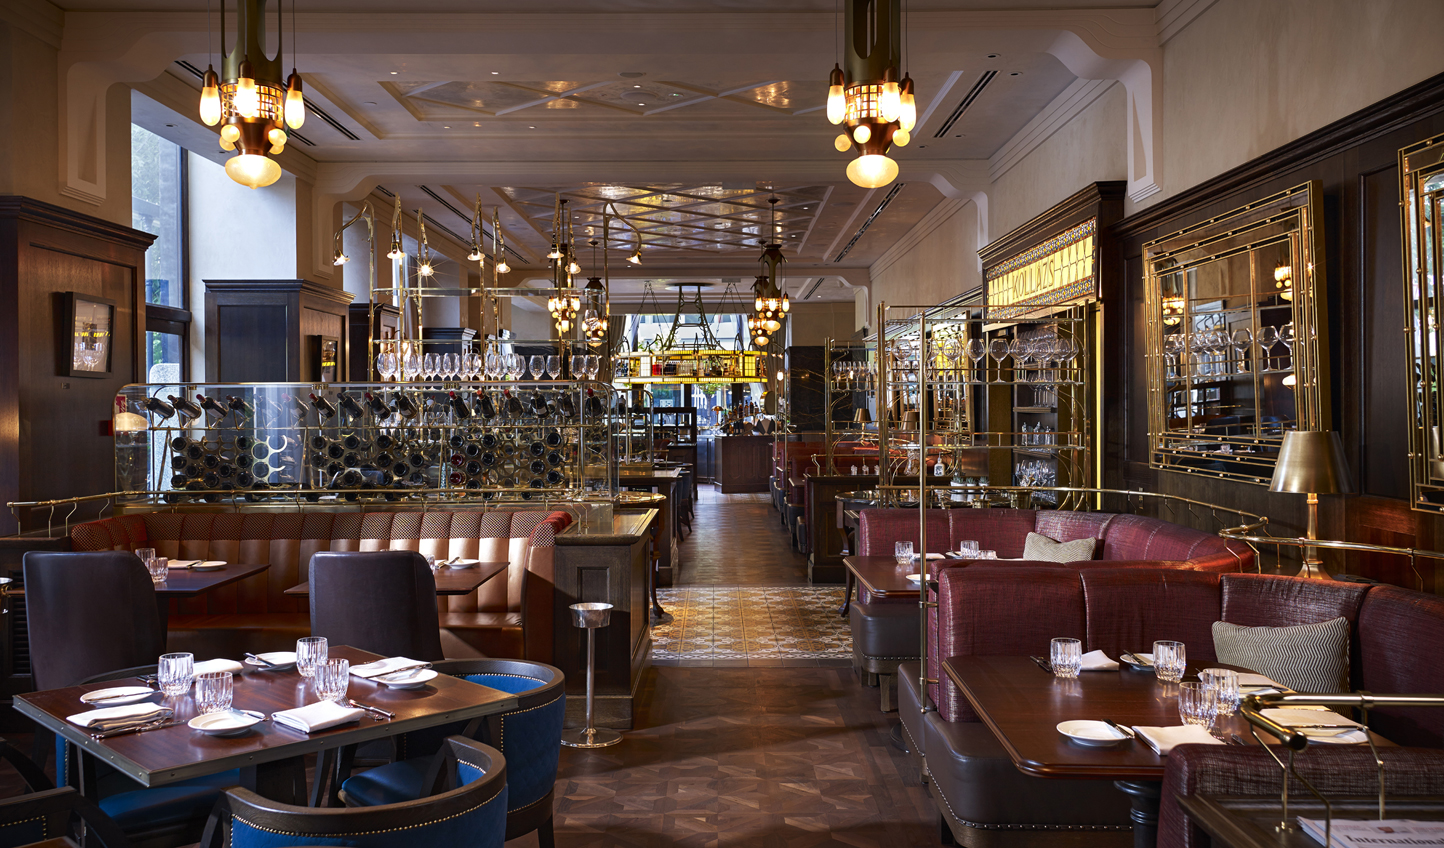 Dine from morning till night in Kollazs Brasserie